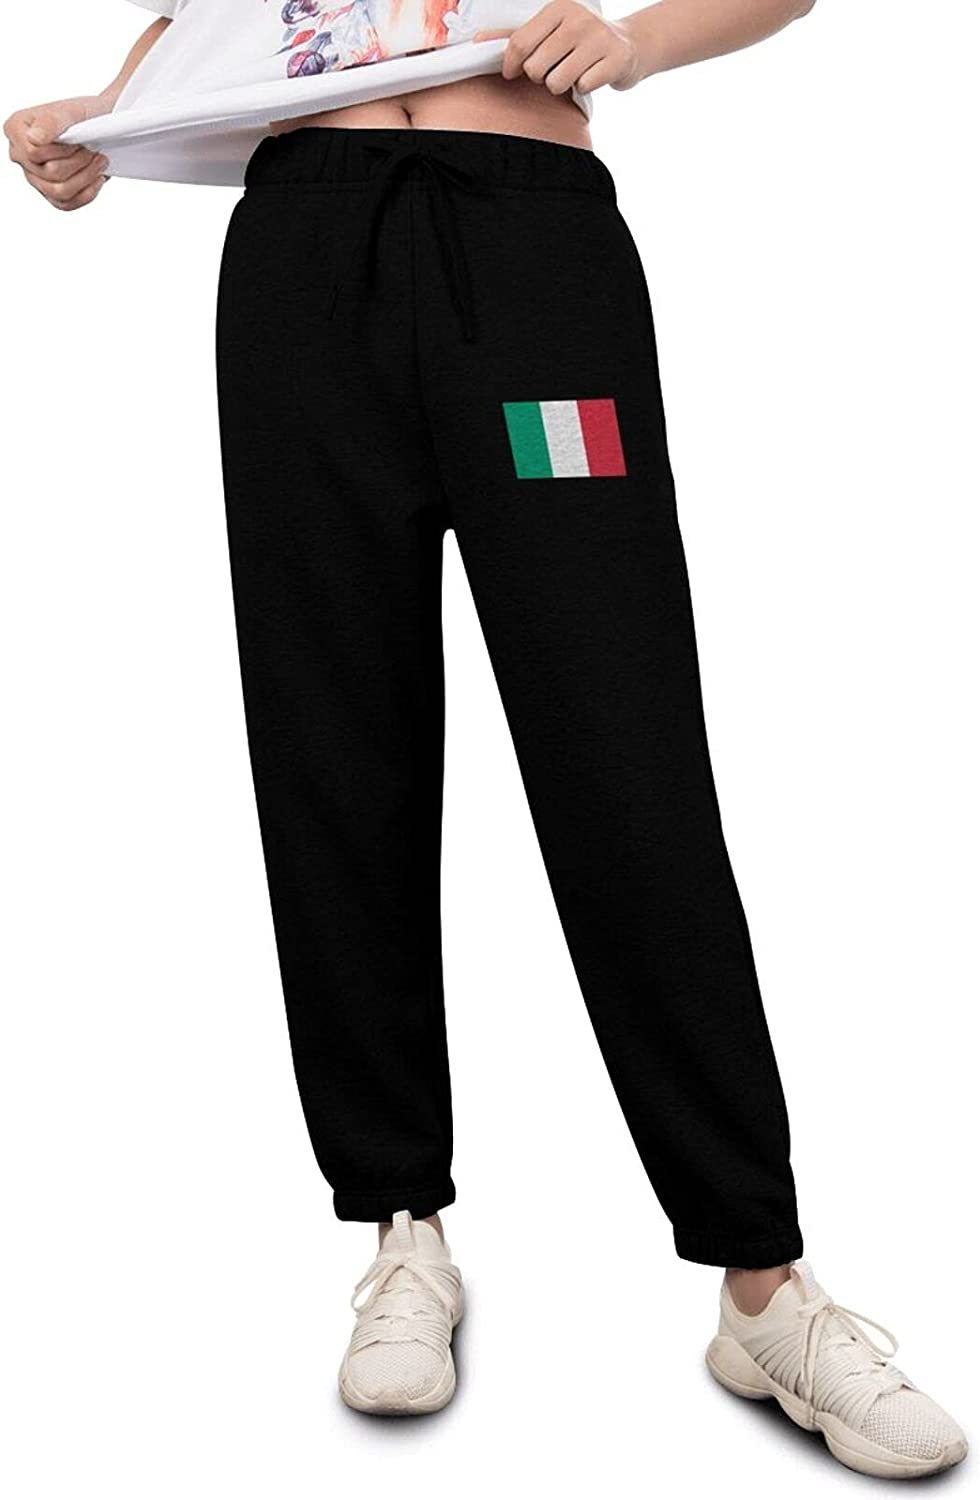 Italian Flag Women's Lightweight Relaxe Pants Running Attention brand Breathable Discount mail order